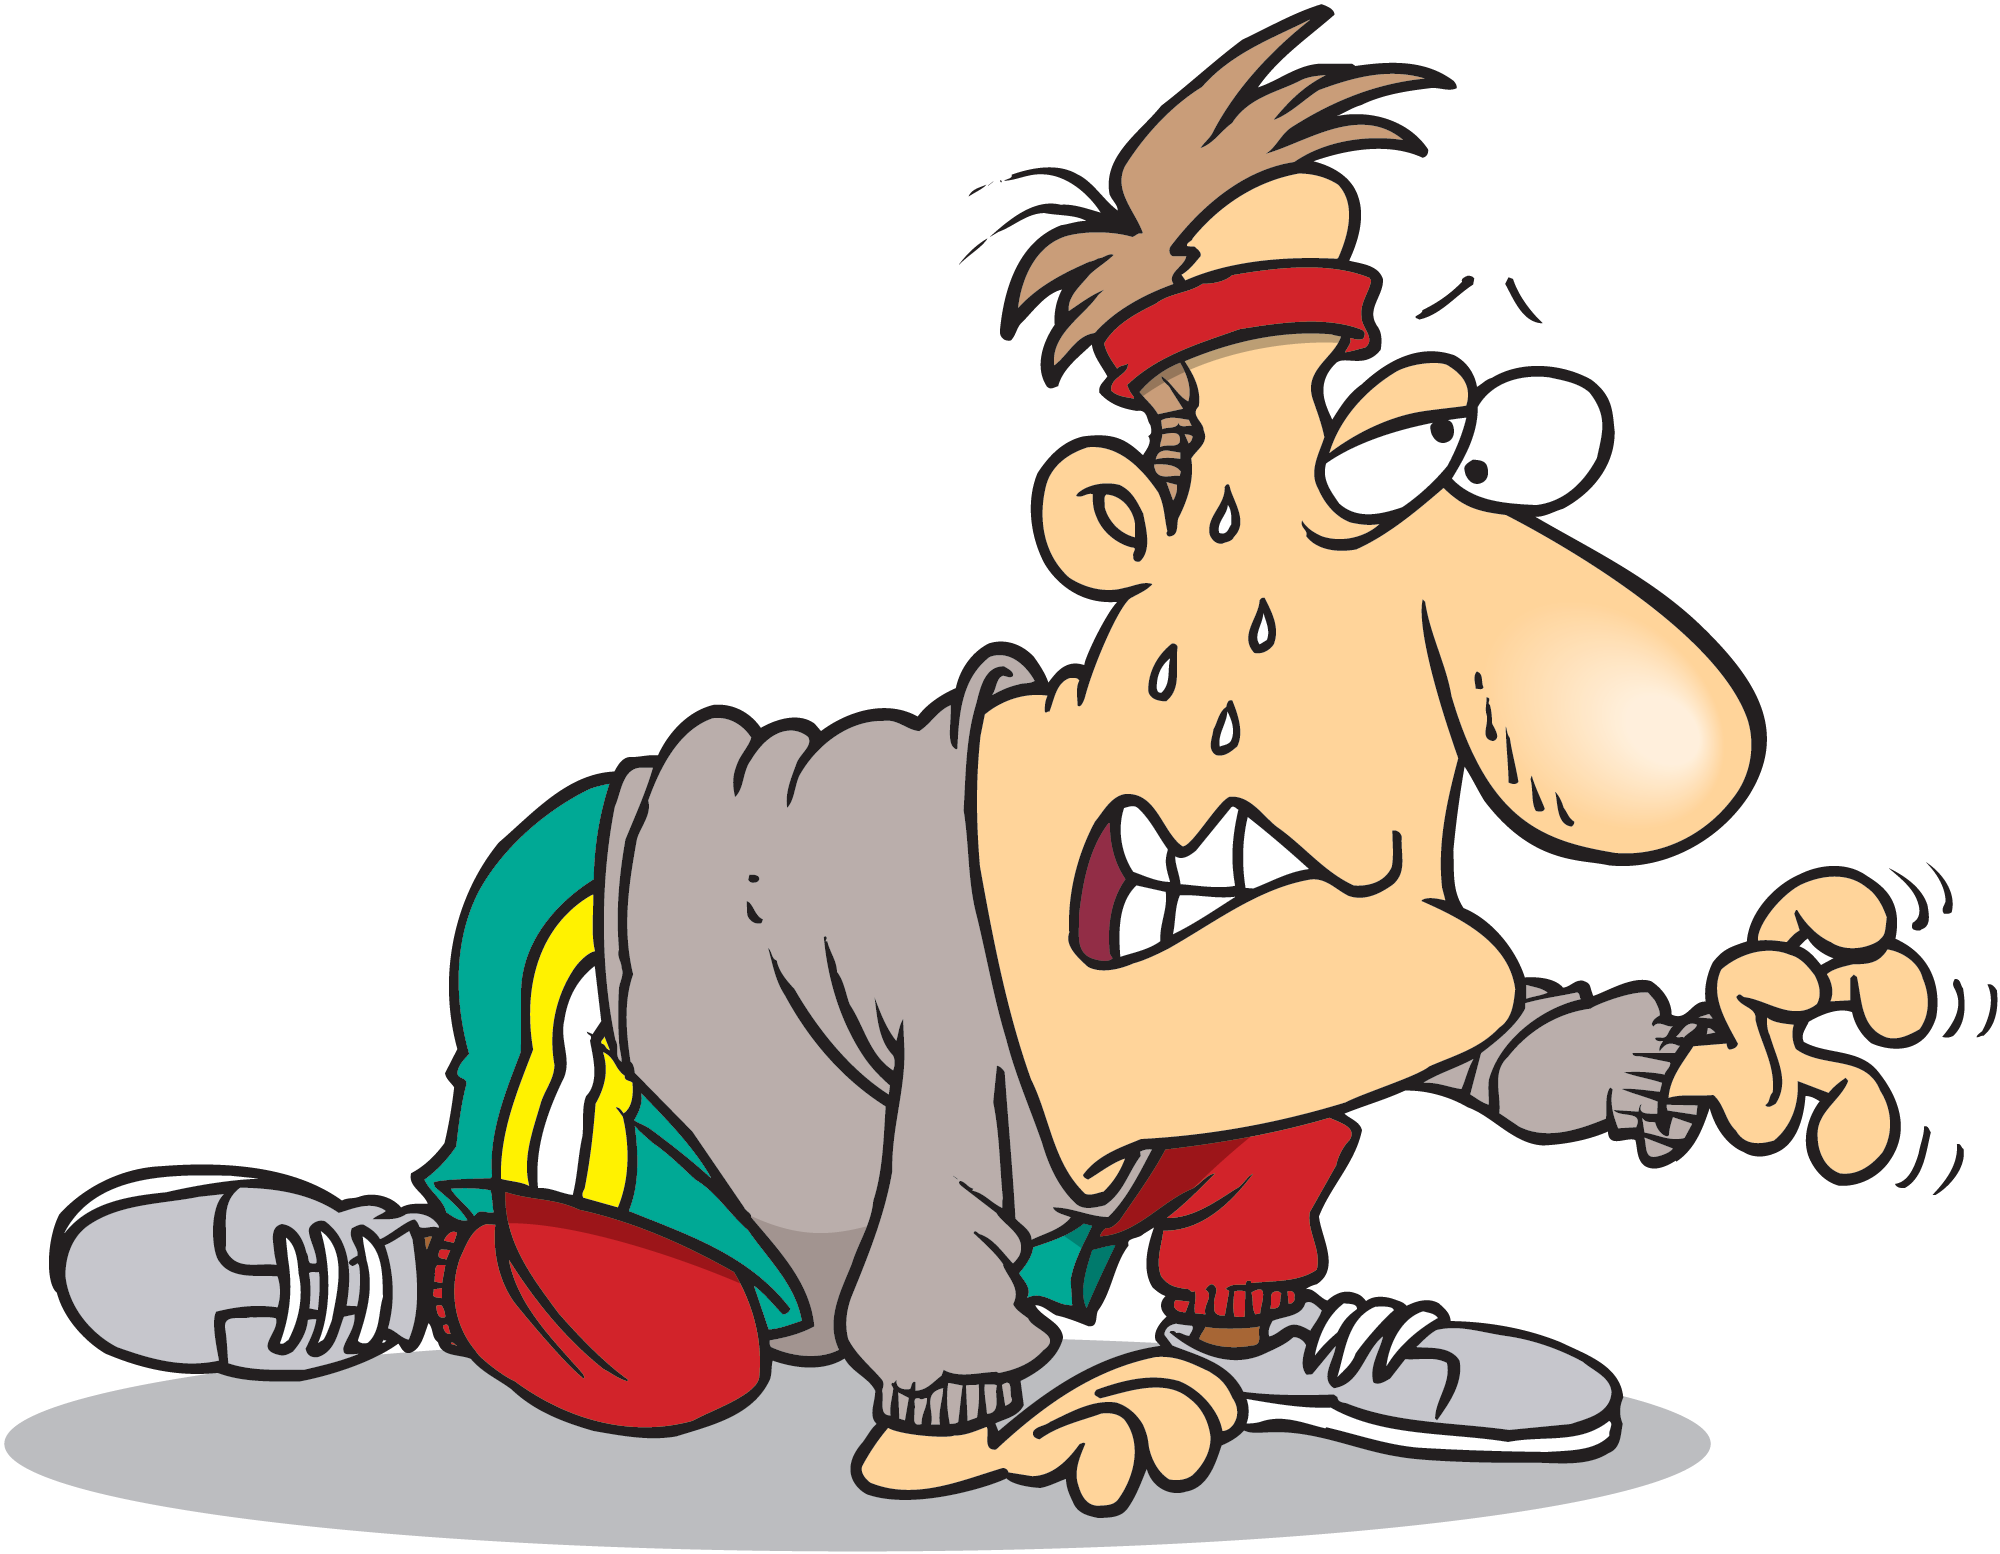 Running page richard slims. Exercising clipart exercise cartoon